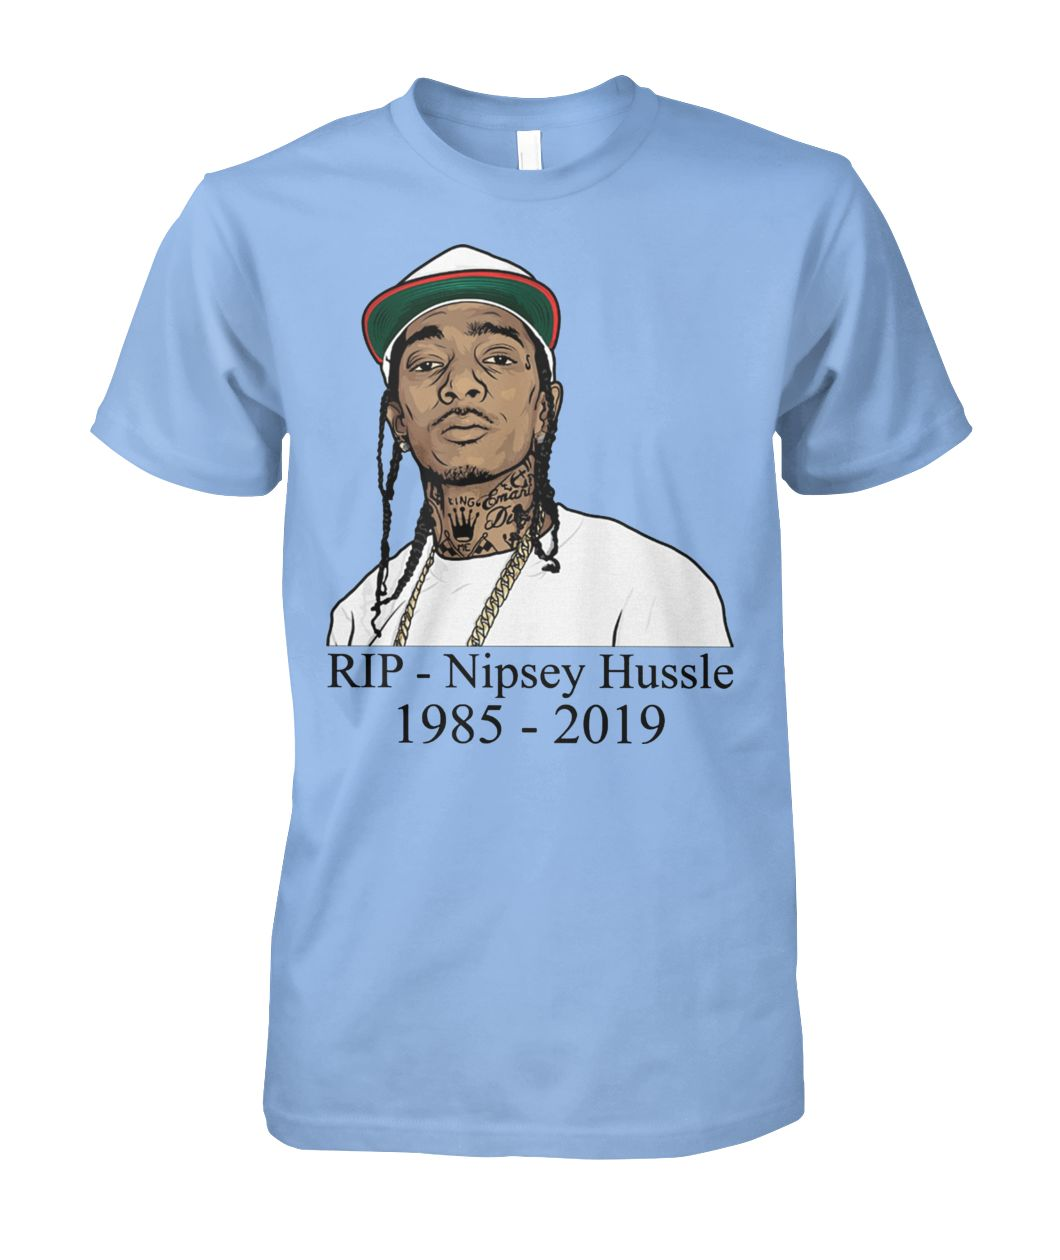 [Hot version] Rip Nipsey Hussle shirt